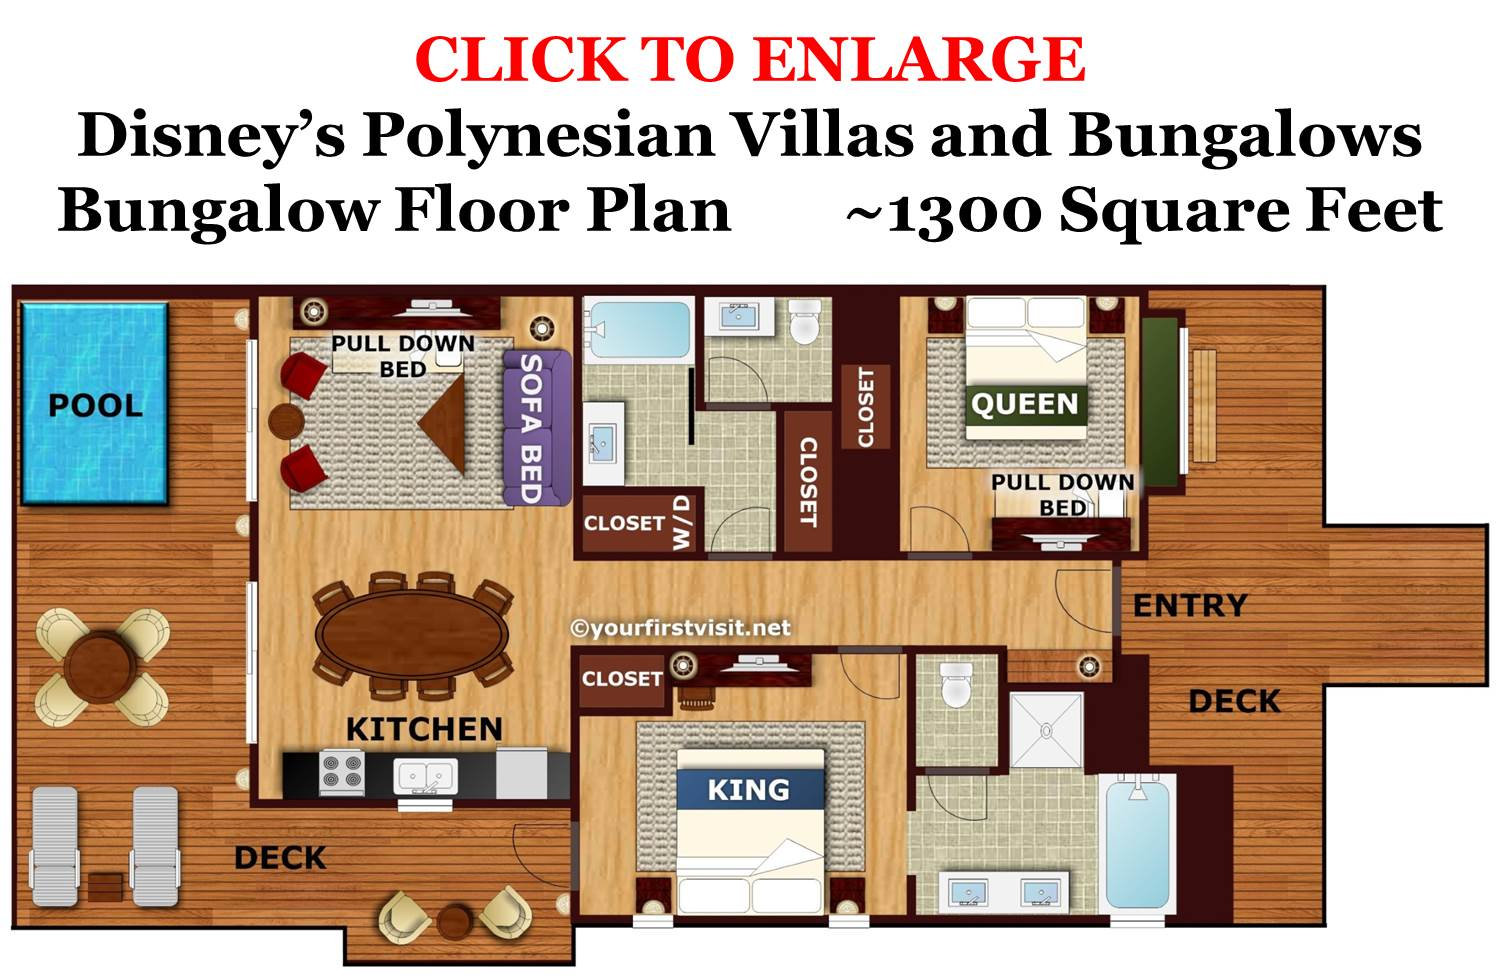 Bungalow Floor Plan - Disney's Polynesian Villas and Bungalows from yourfirstvisit.net